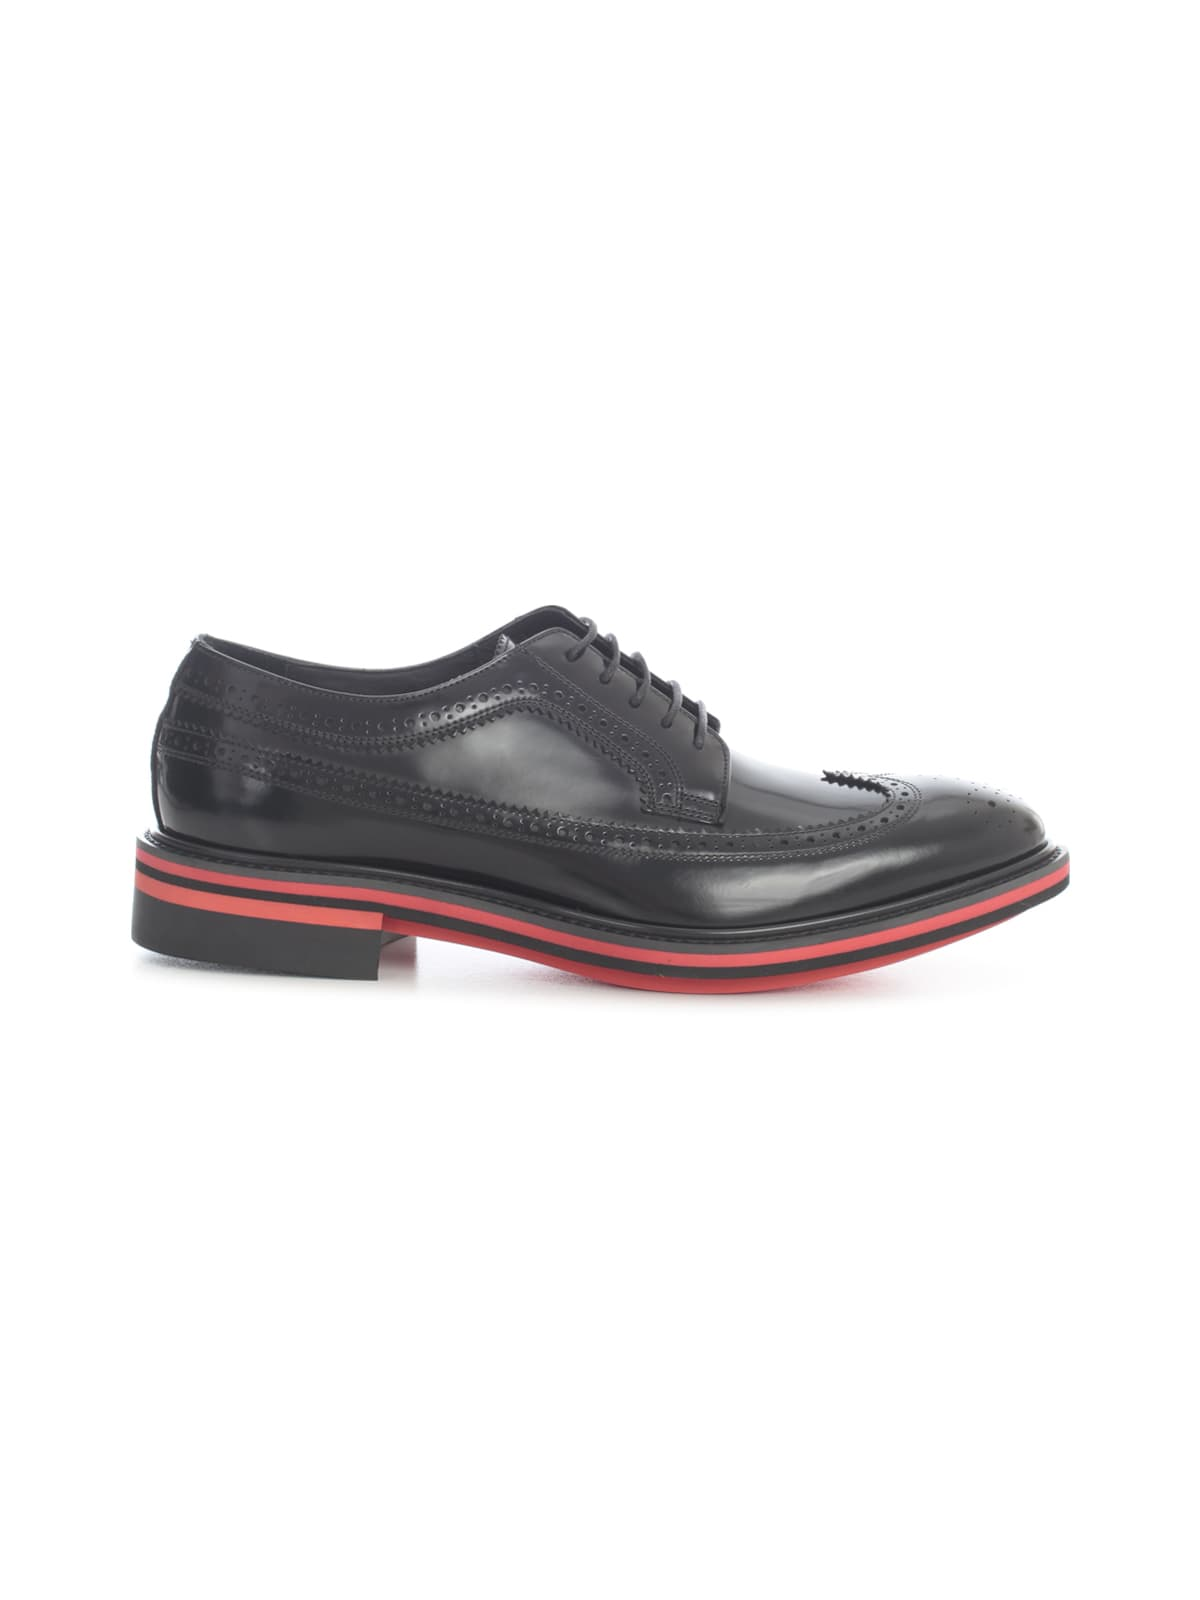 Paul Smith CHASE LACE UP SHOES